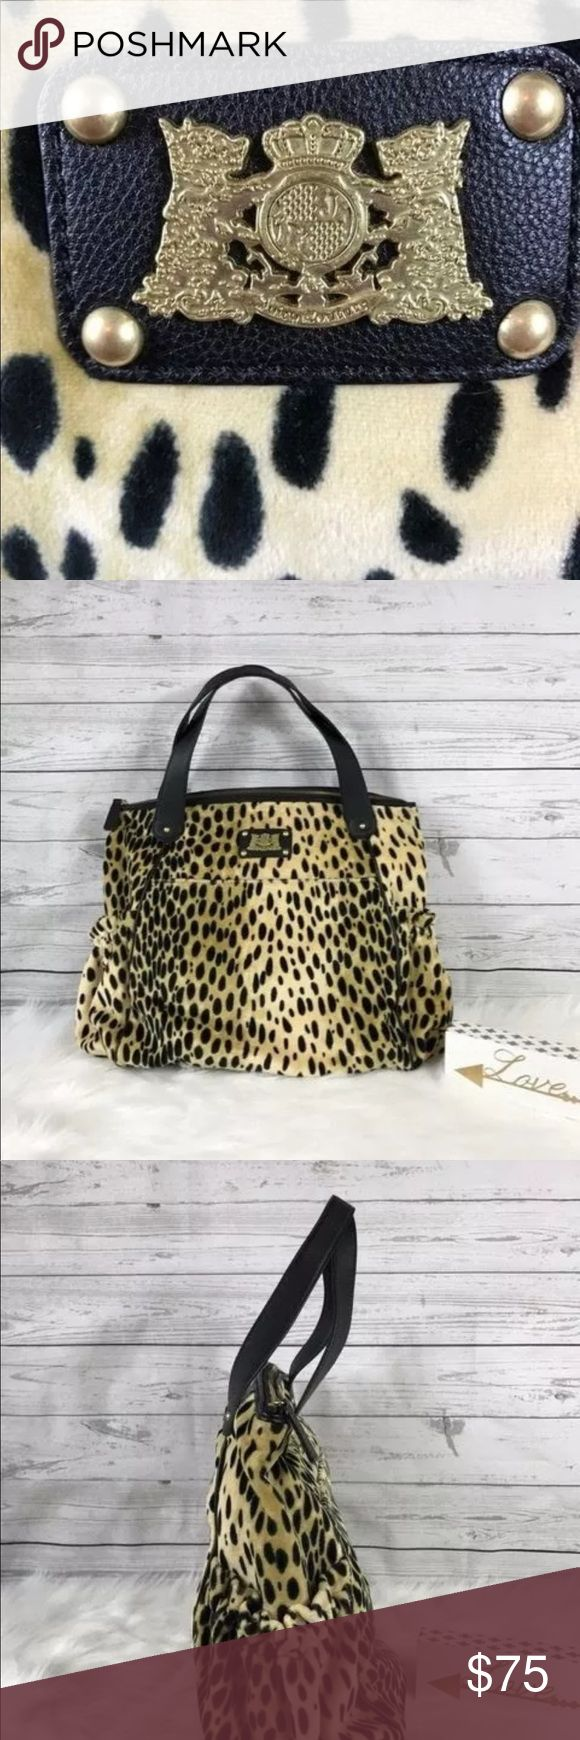 """Juicy Couture Scottie Dog Leopard Velour Bag Juicy Couture Scottie Dog Leopard Velour Bag Shoulder Satchel Black Brown HTF This gorgeous versatile bag is sold out and hard to find! • Pre-owned, item is gently used and shows wear • Gold toned hardware • Zip closure • 1 interior zip pocket • 2 interior slip pockets • 1 exterior front slip pocket with magnetic closure • 2 exterior side pockets • Double top handle drop: 7.5"""" drop approximate • Width: 17.5"""" approximate • Height: 14"""" approximate…"""